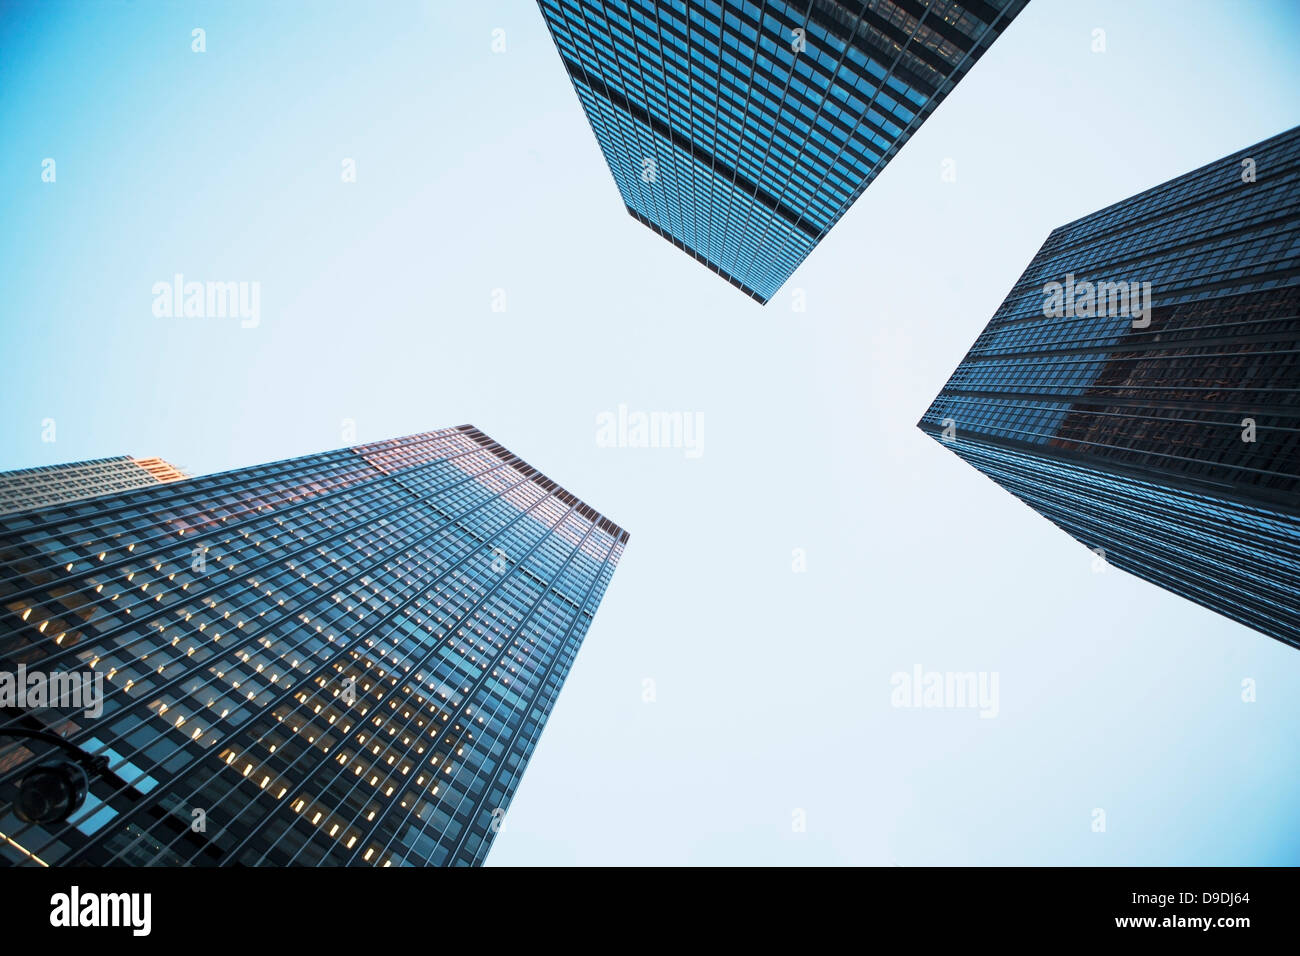 View of three skyscrapers from below Stock Photo